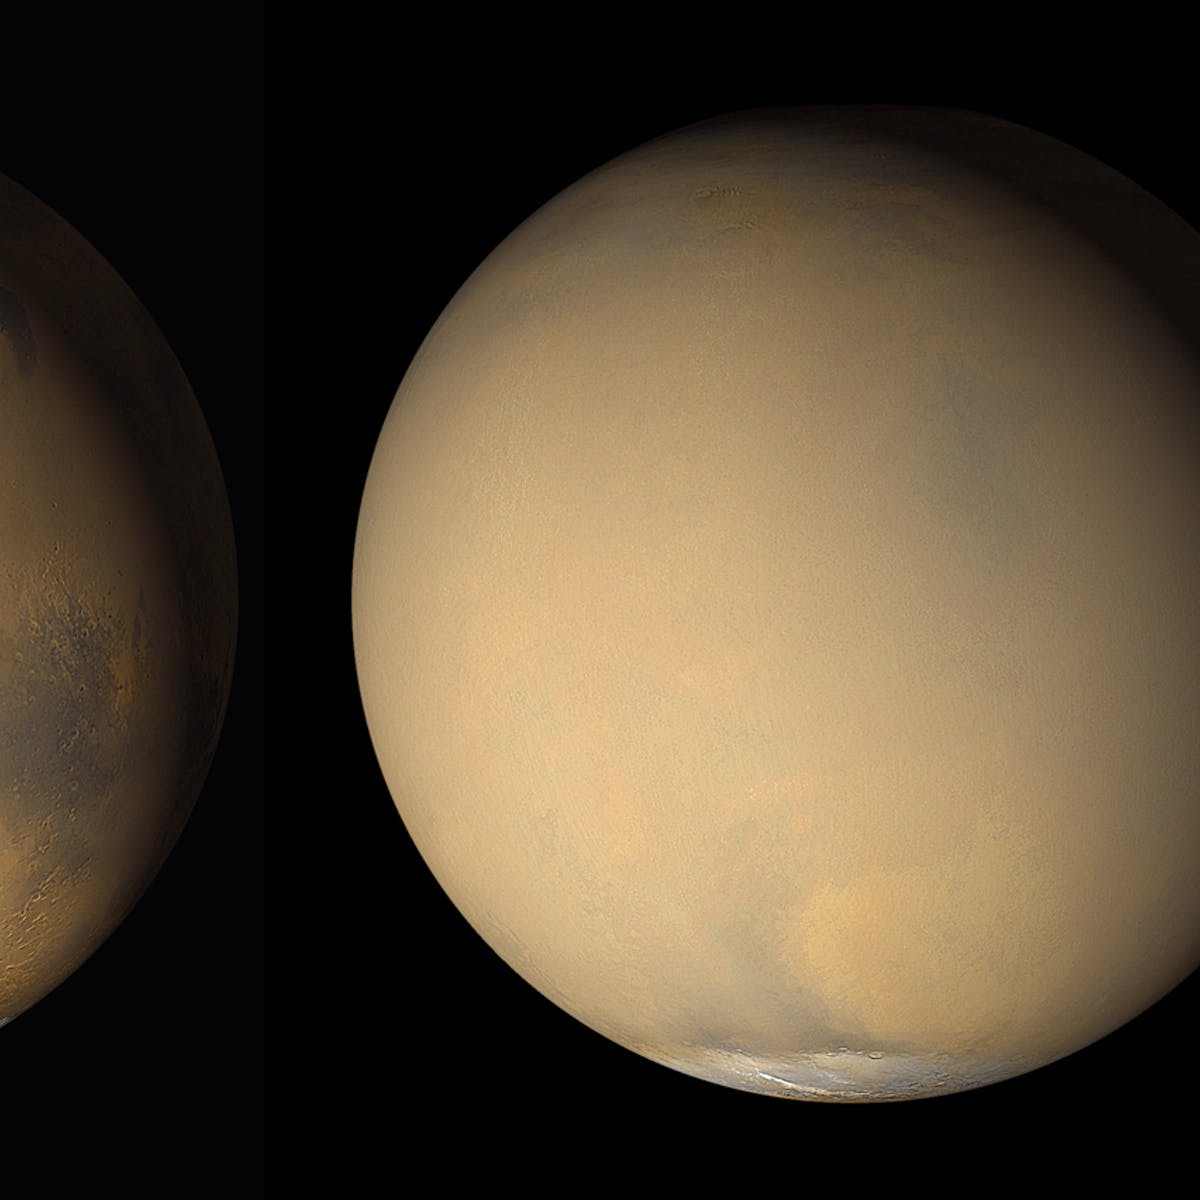 Mars at Opposition: How to See the Red Planet Up Close in July